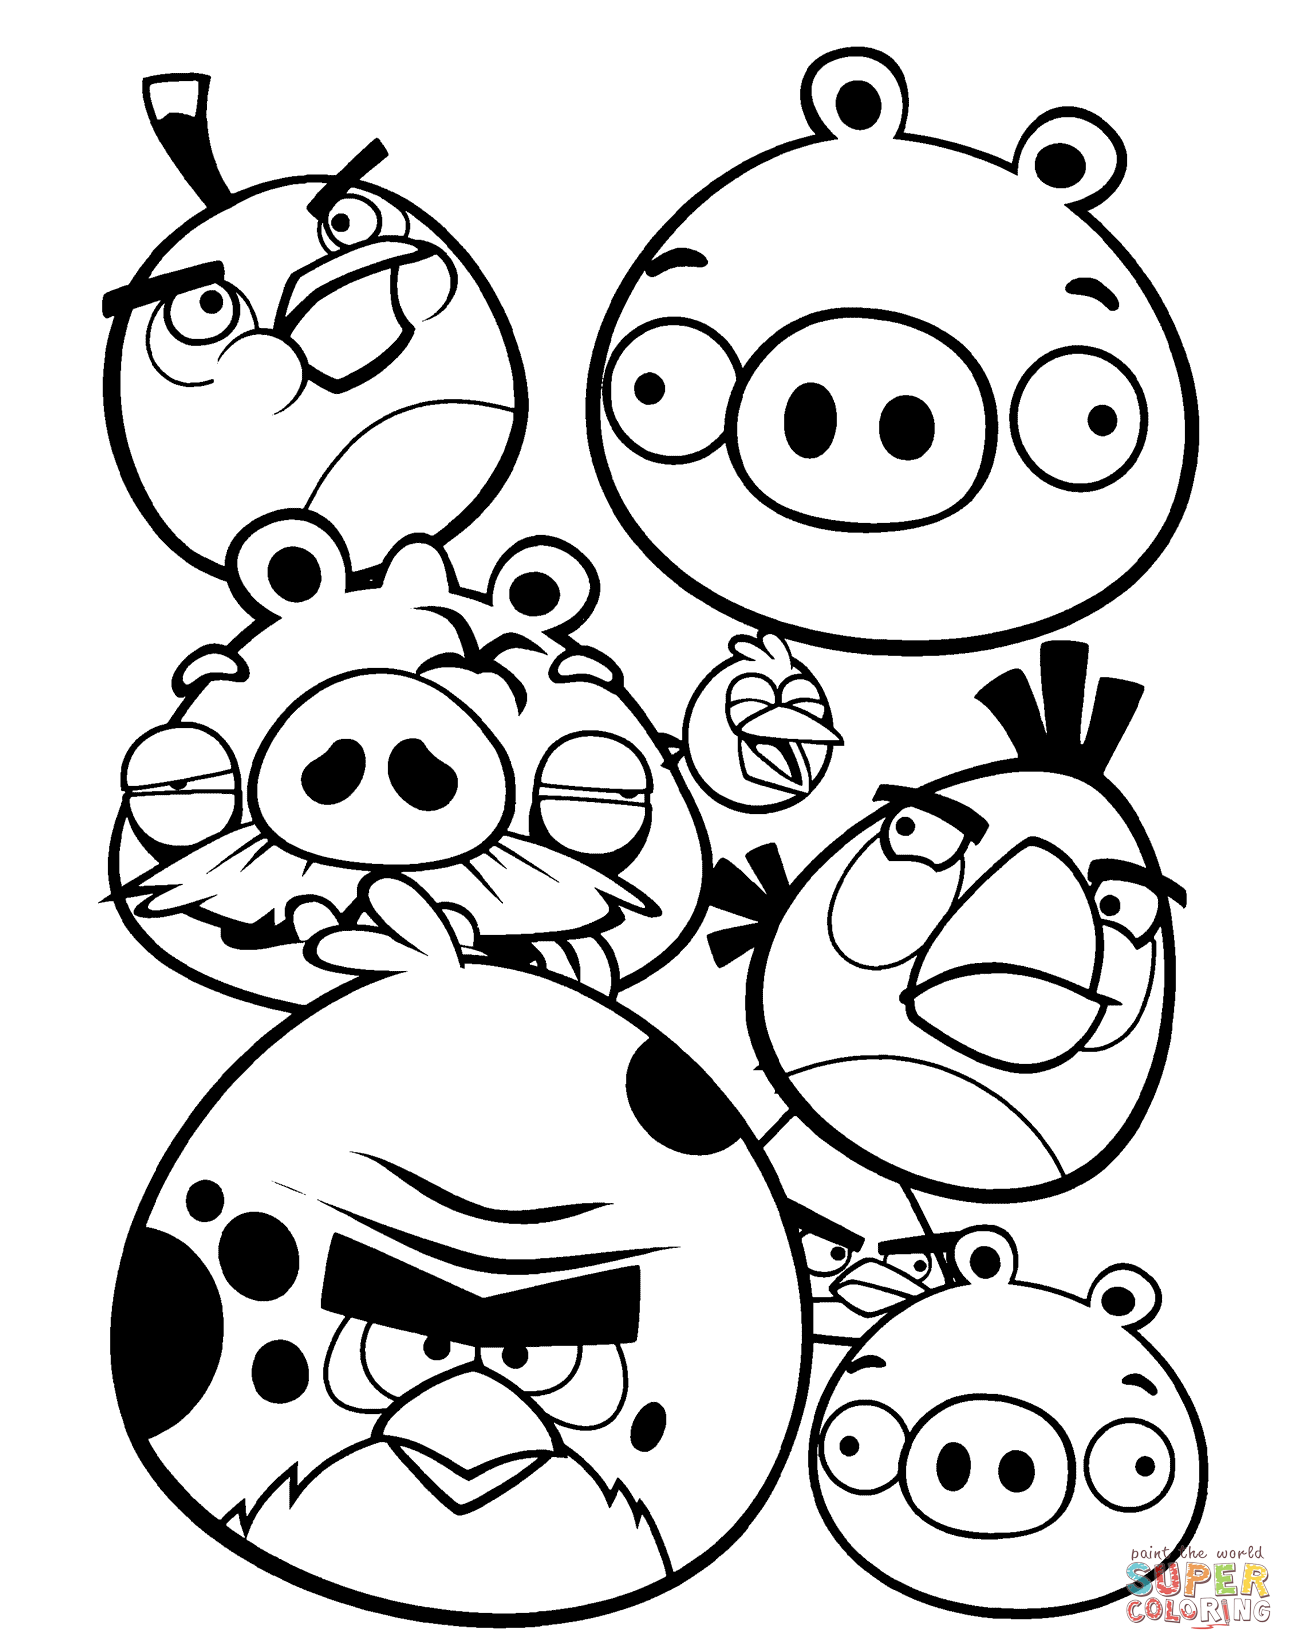 coloring bird printable 15 best printable angry birds colouring pages for kids coloring bird printable